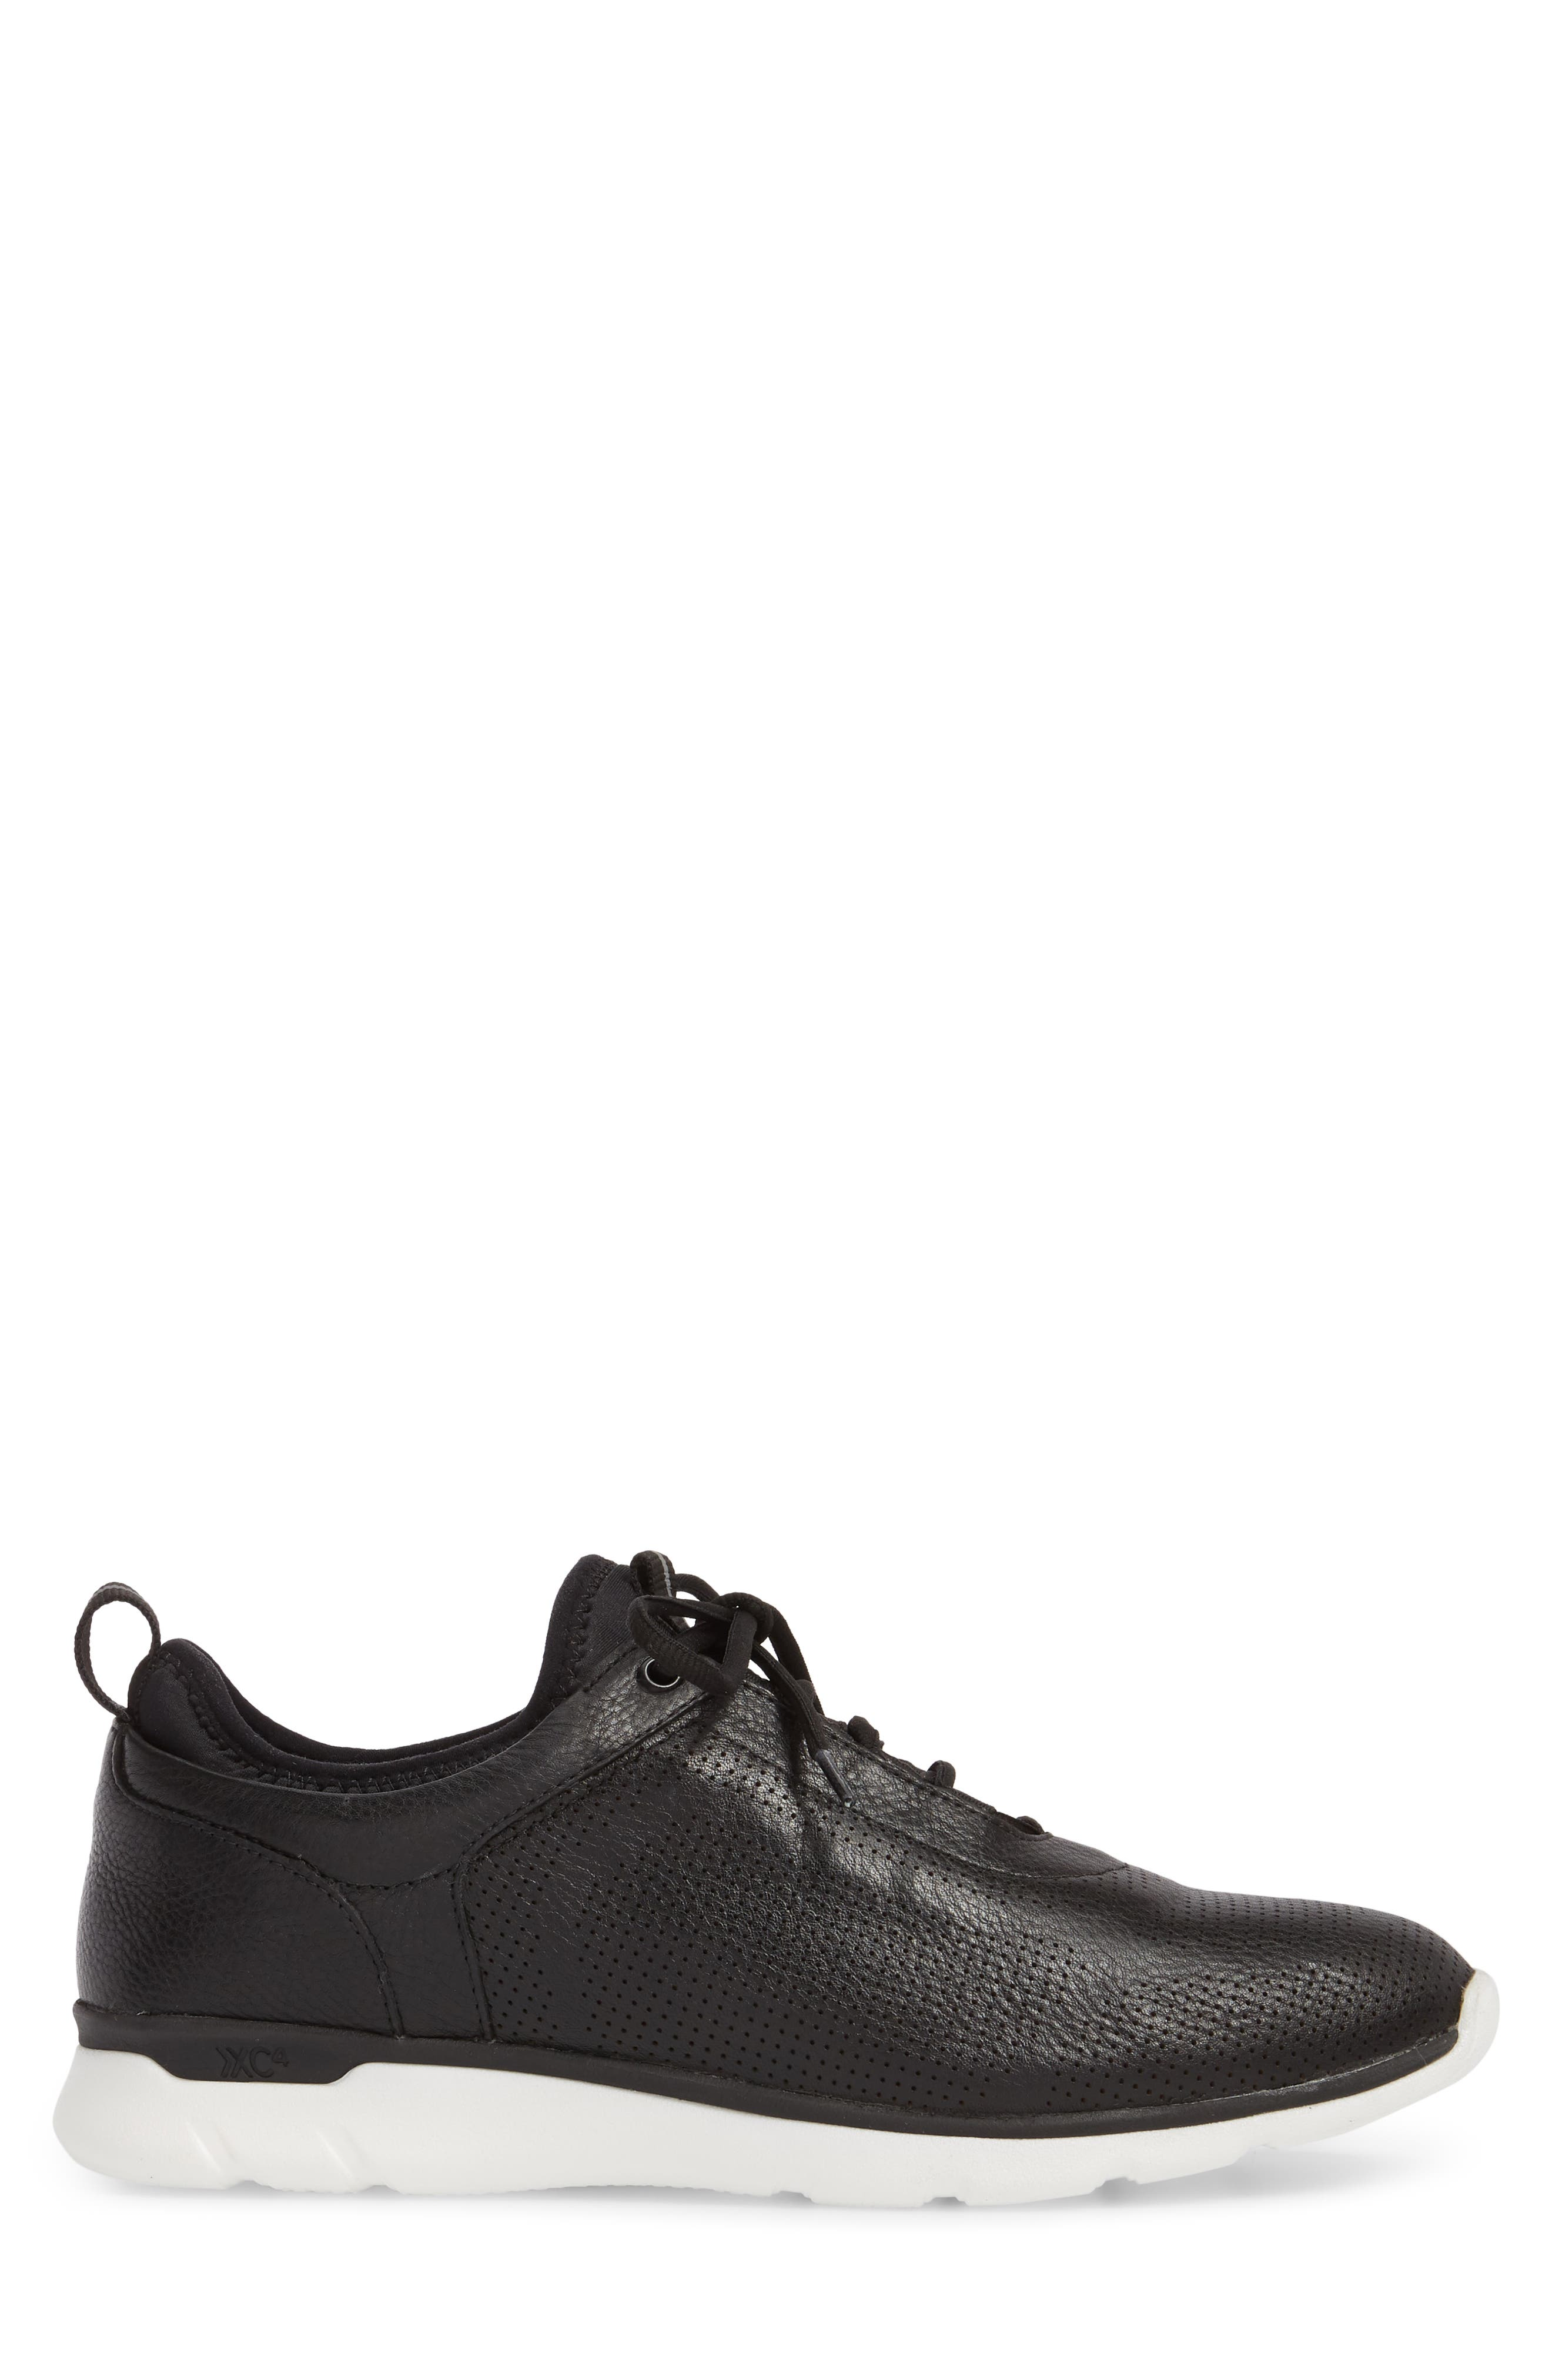 JOHNSTON & MURPHY, Prentiss XC4<sup>®</sup> Waterproof Sneaker, Alternate thumbnail 3, color, BLACK LEATHER